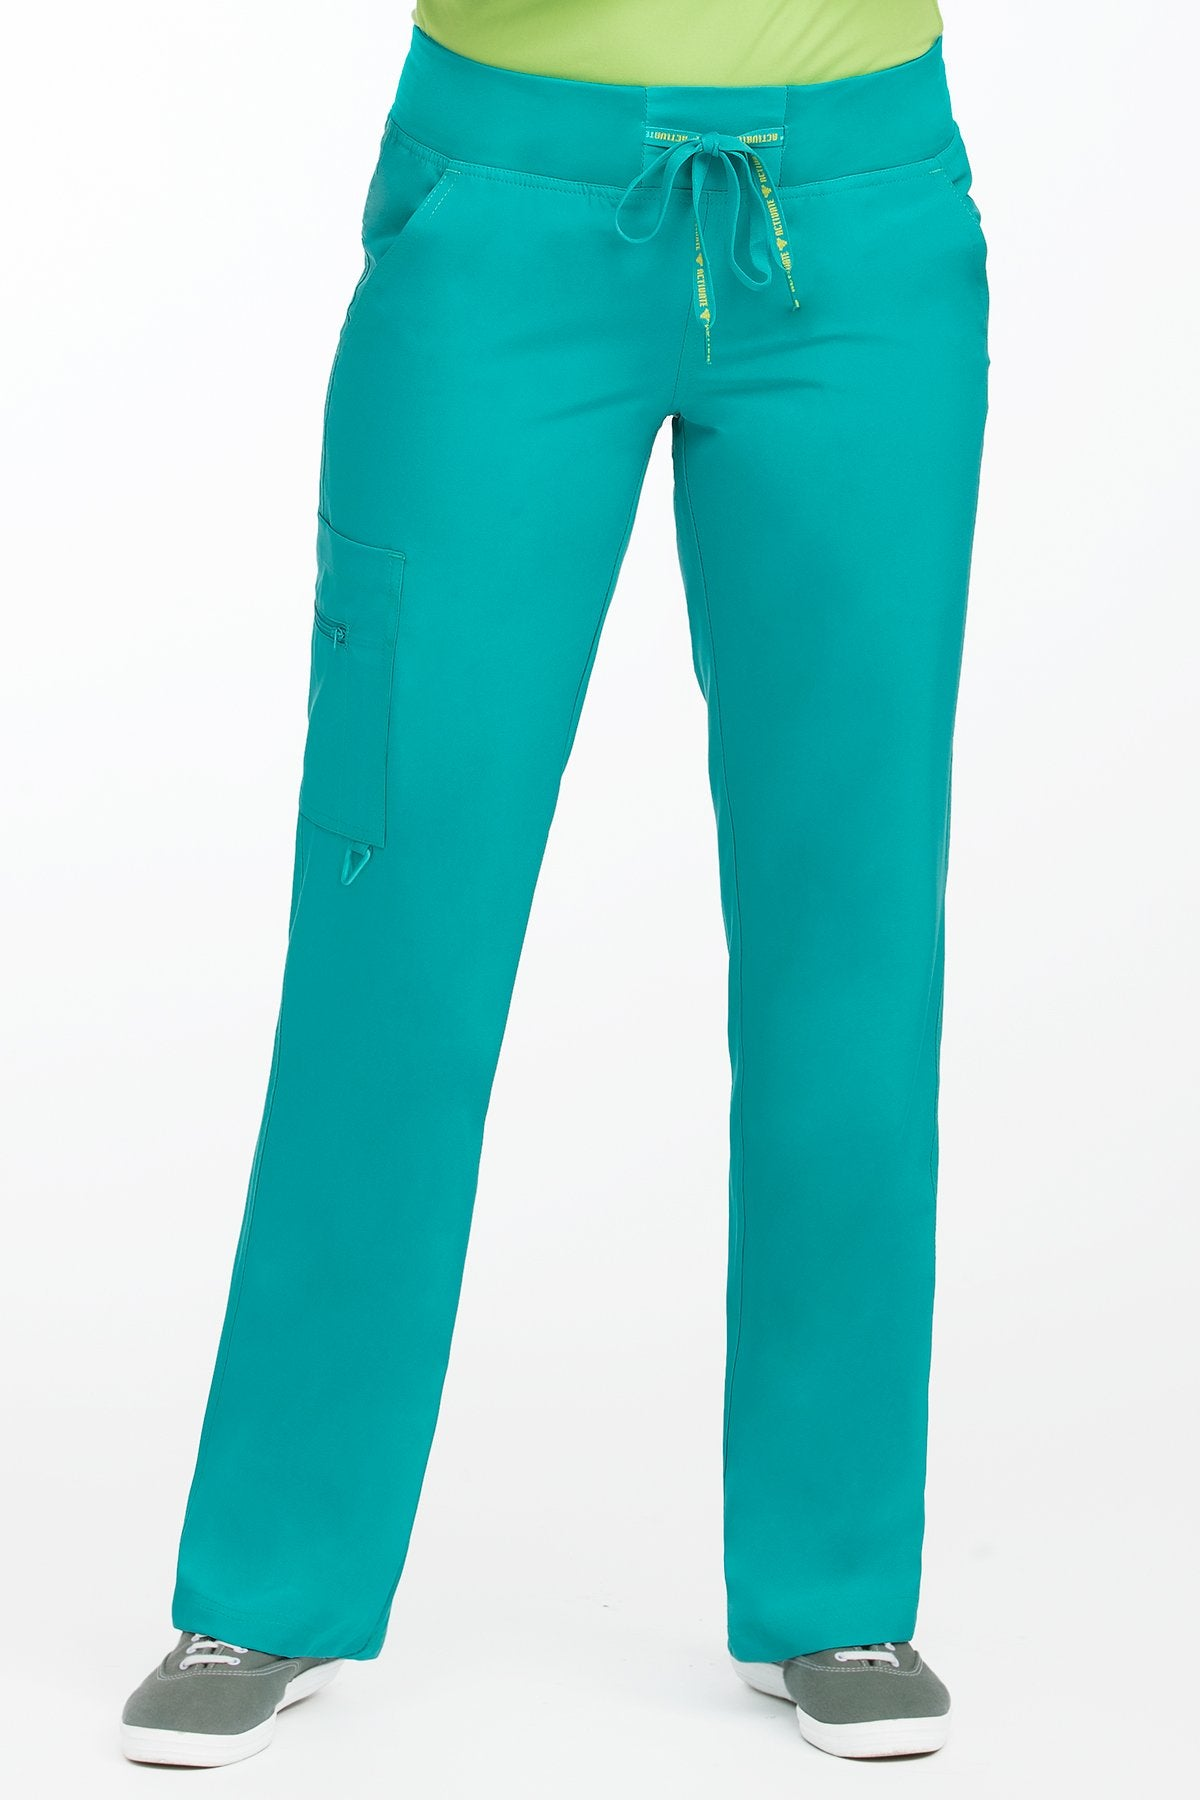 Med Couture Activate 8747 Petite Yoga 1 Cargo Pocket Pant